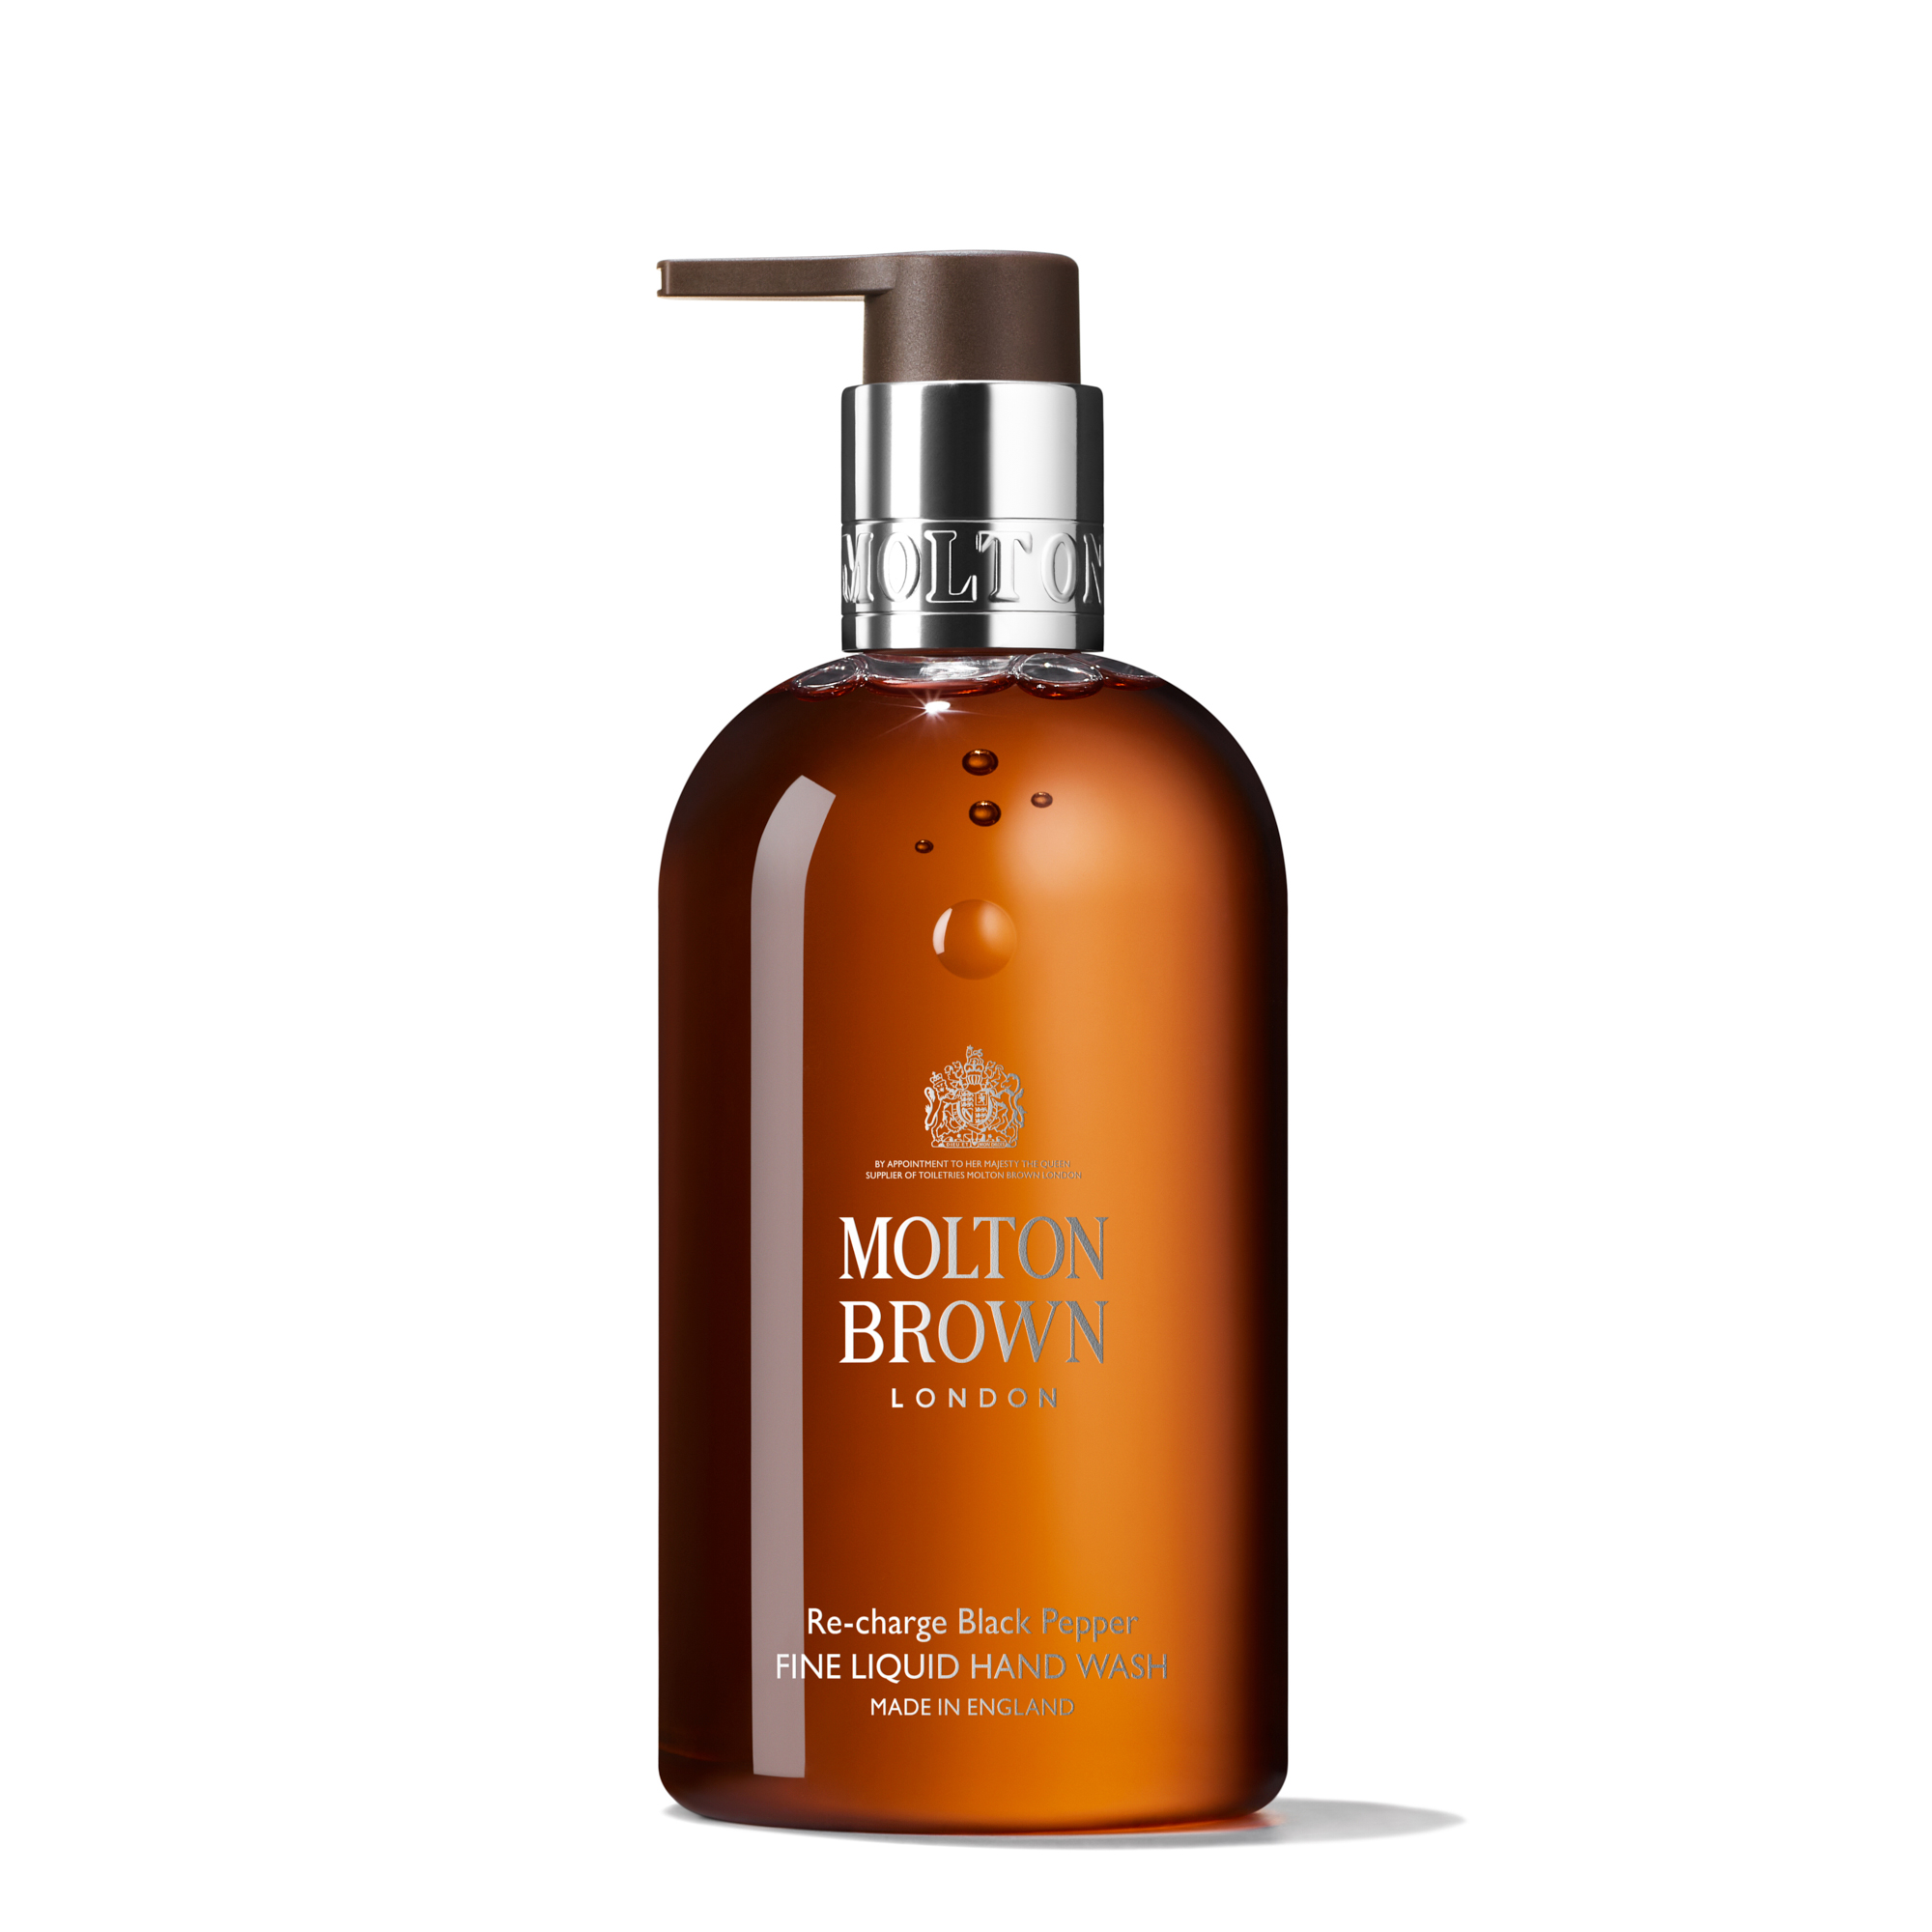 An image of Molton Brown Re-charge Black Pepper Fine Liquid Hand Wash 300ml - RE-CHARGE BLAC...